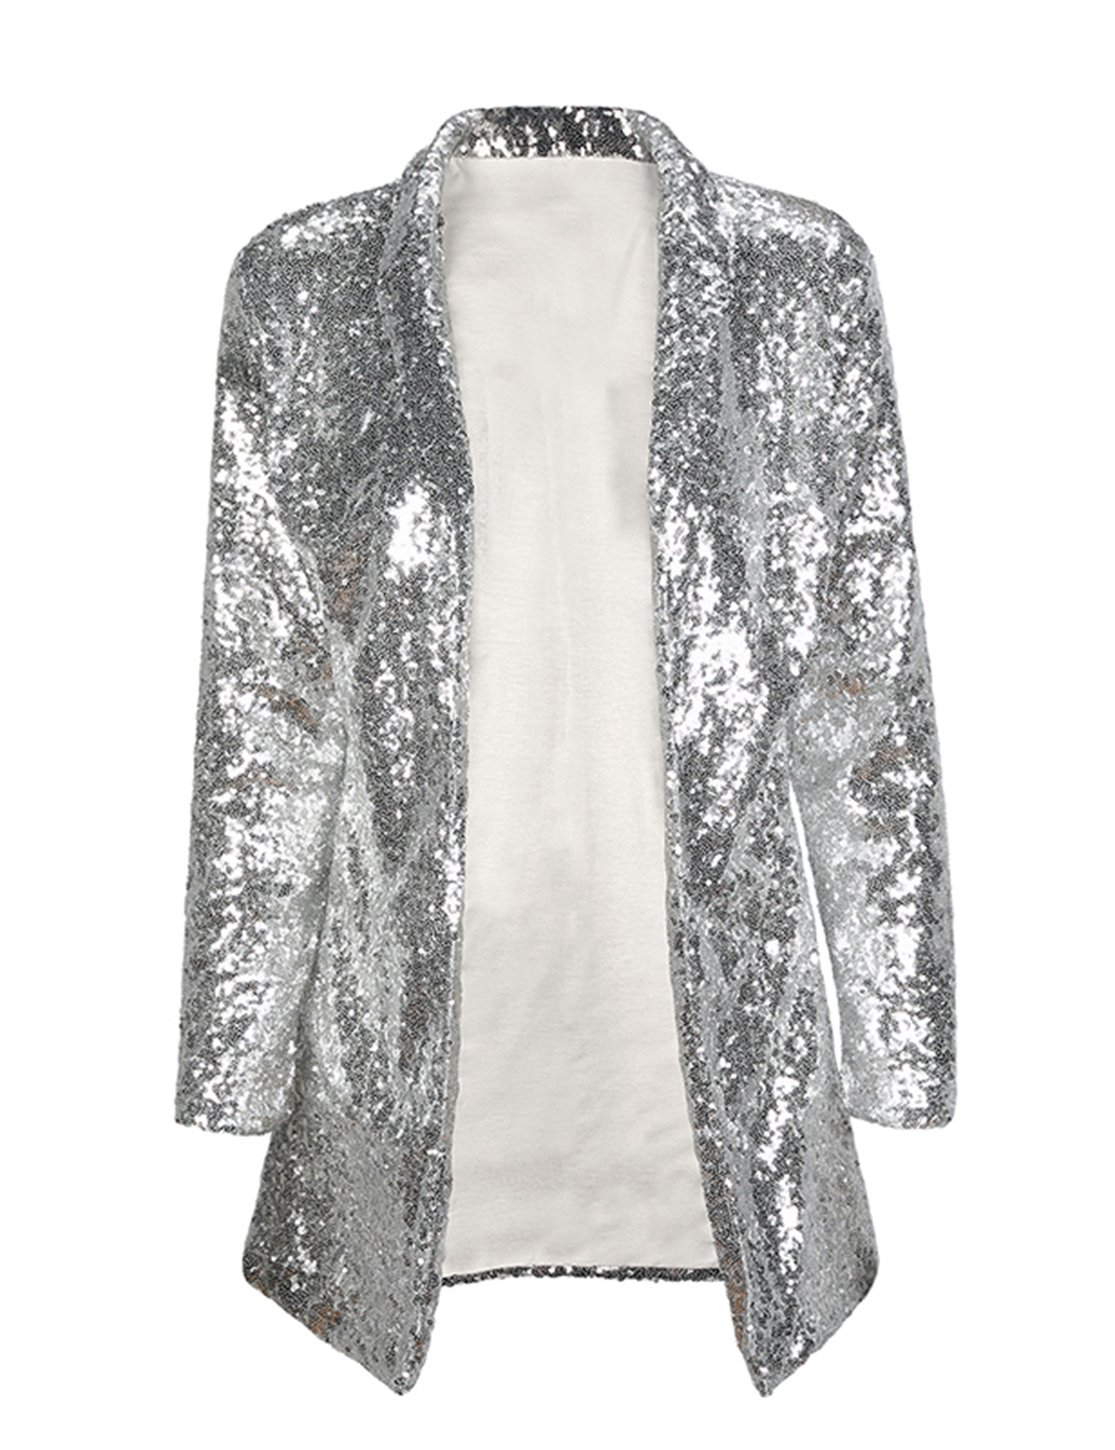 IRISIE Women Sparkle Sequins Open Front Long Sleeve Blazer Jacket(L,Silver)